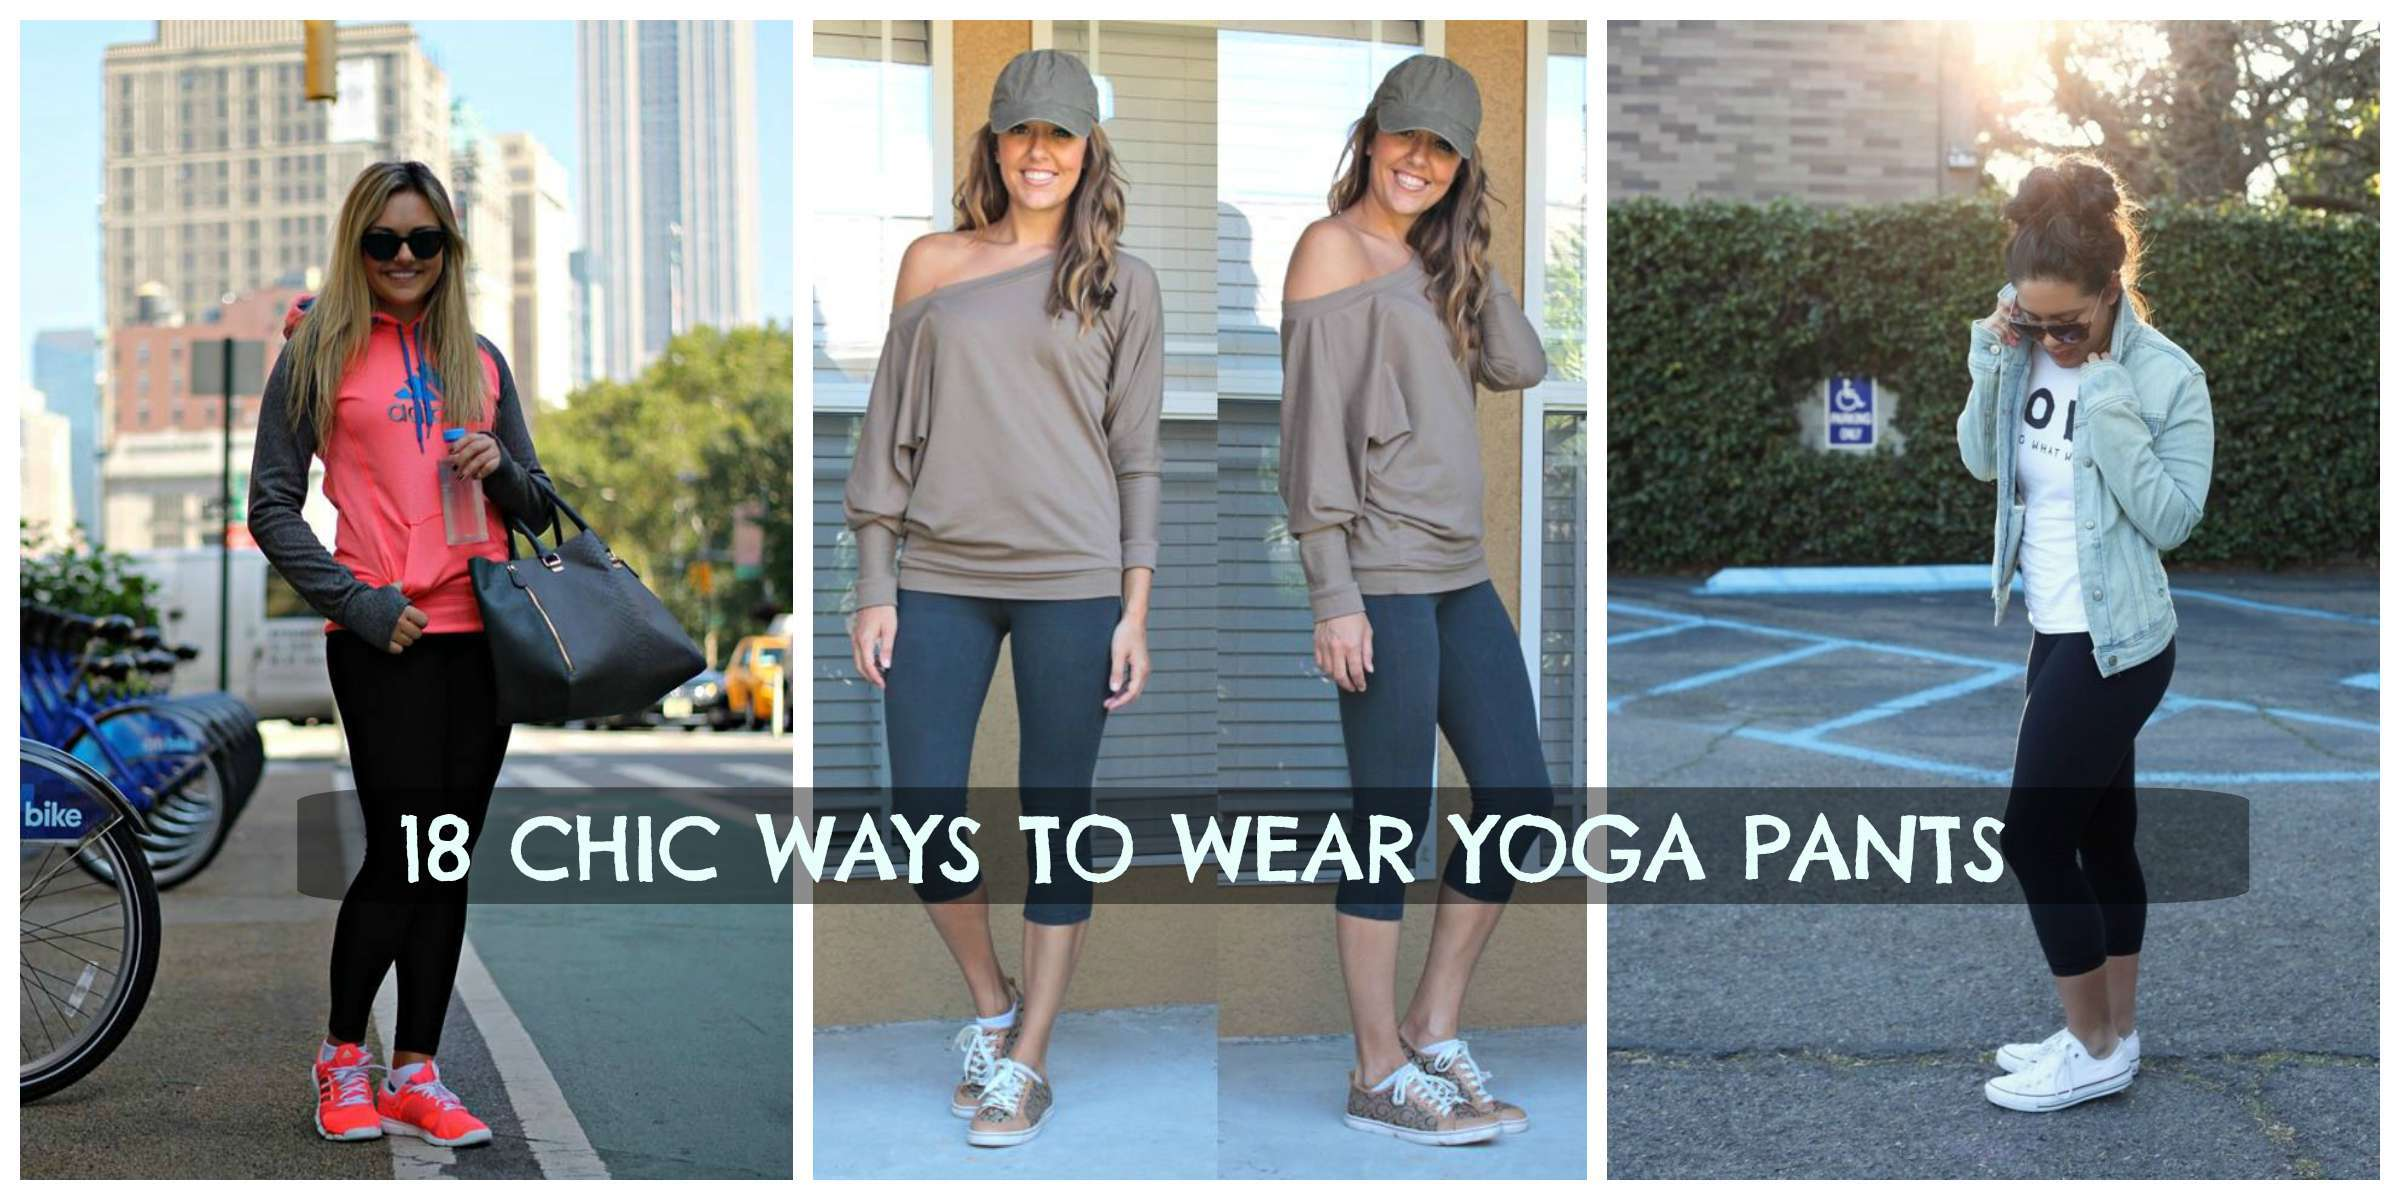 yoga pants outfits18 ways to wear yoga pants for chic look